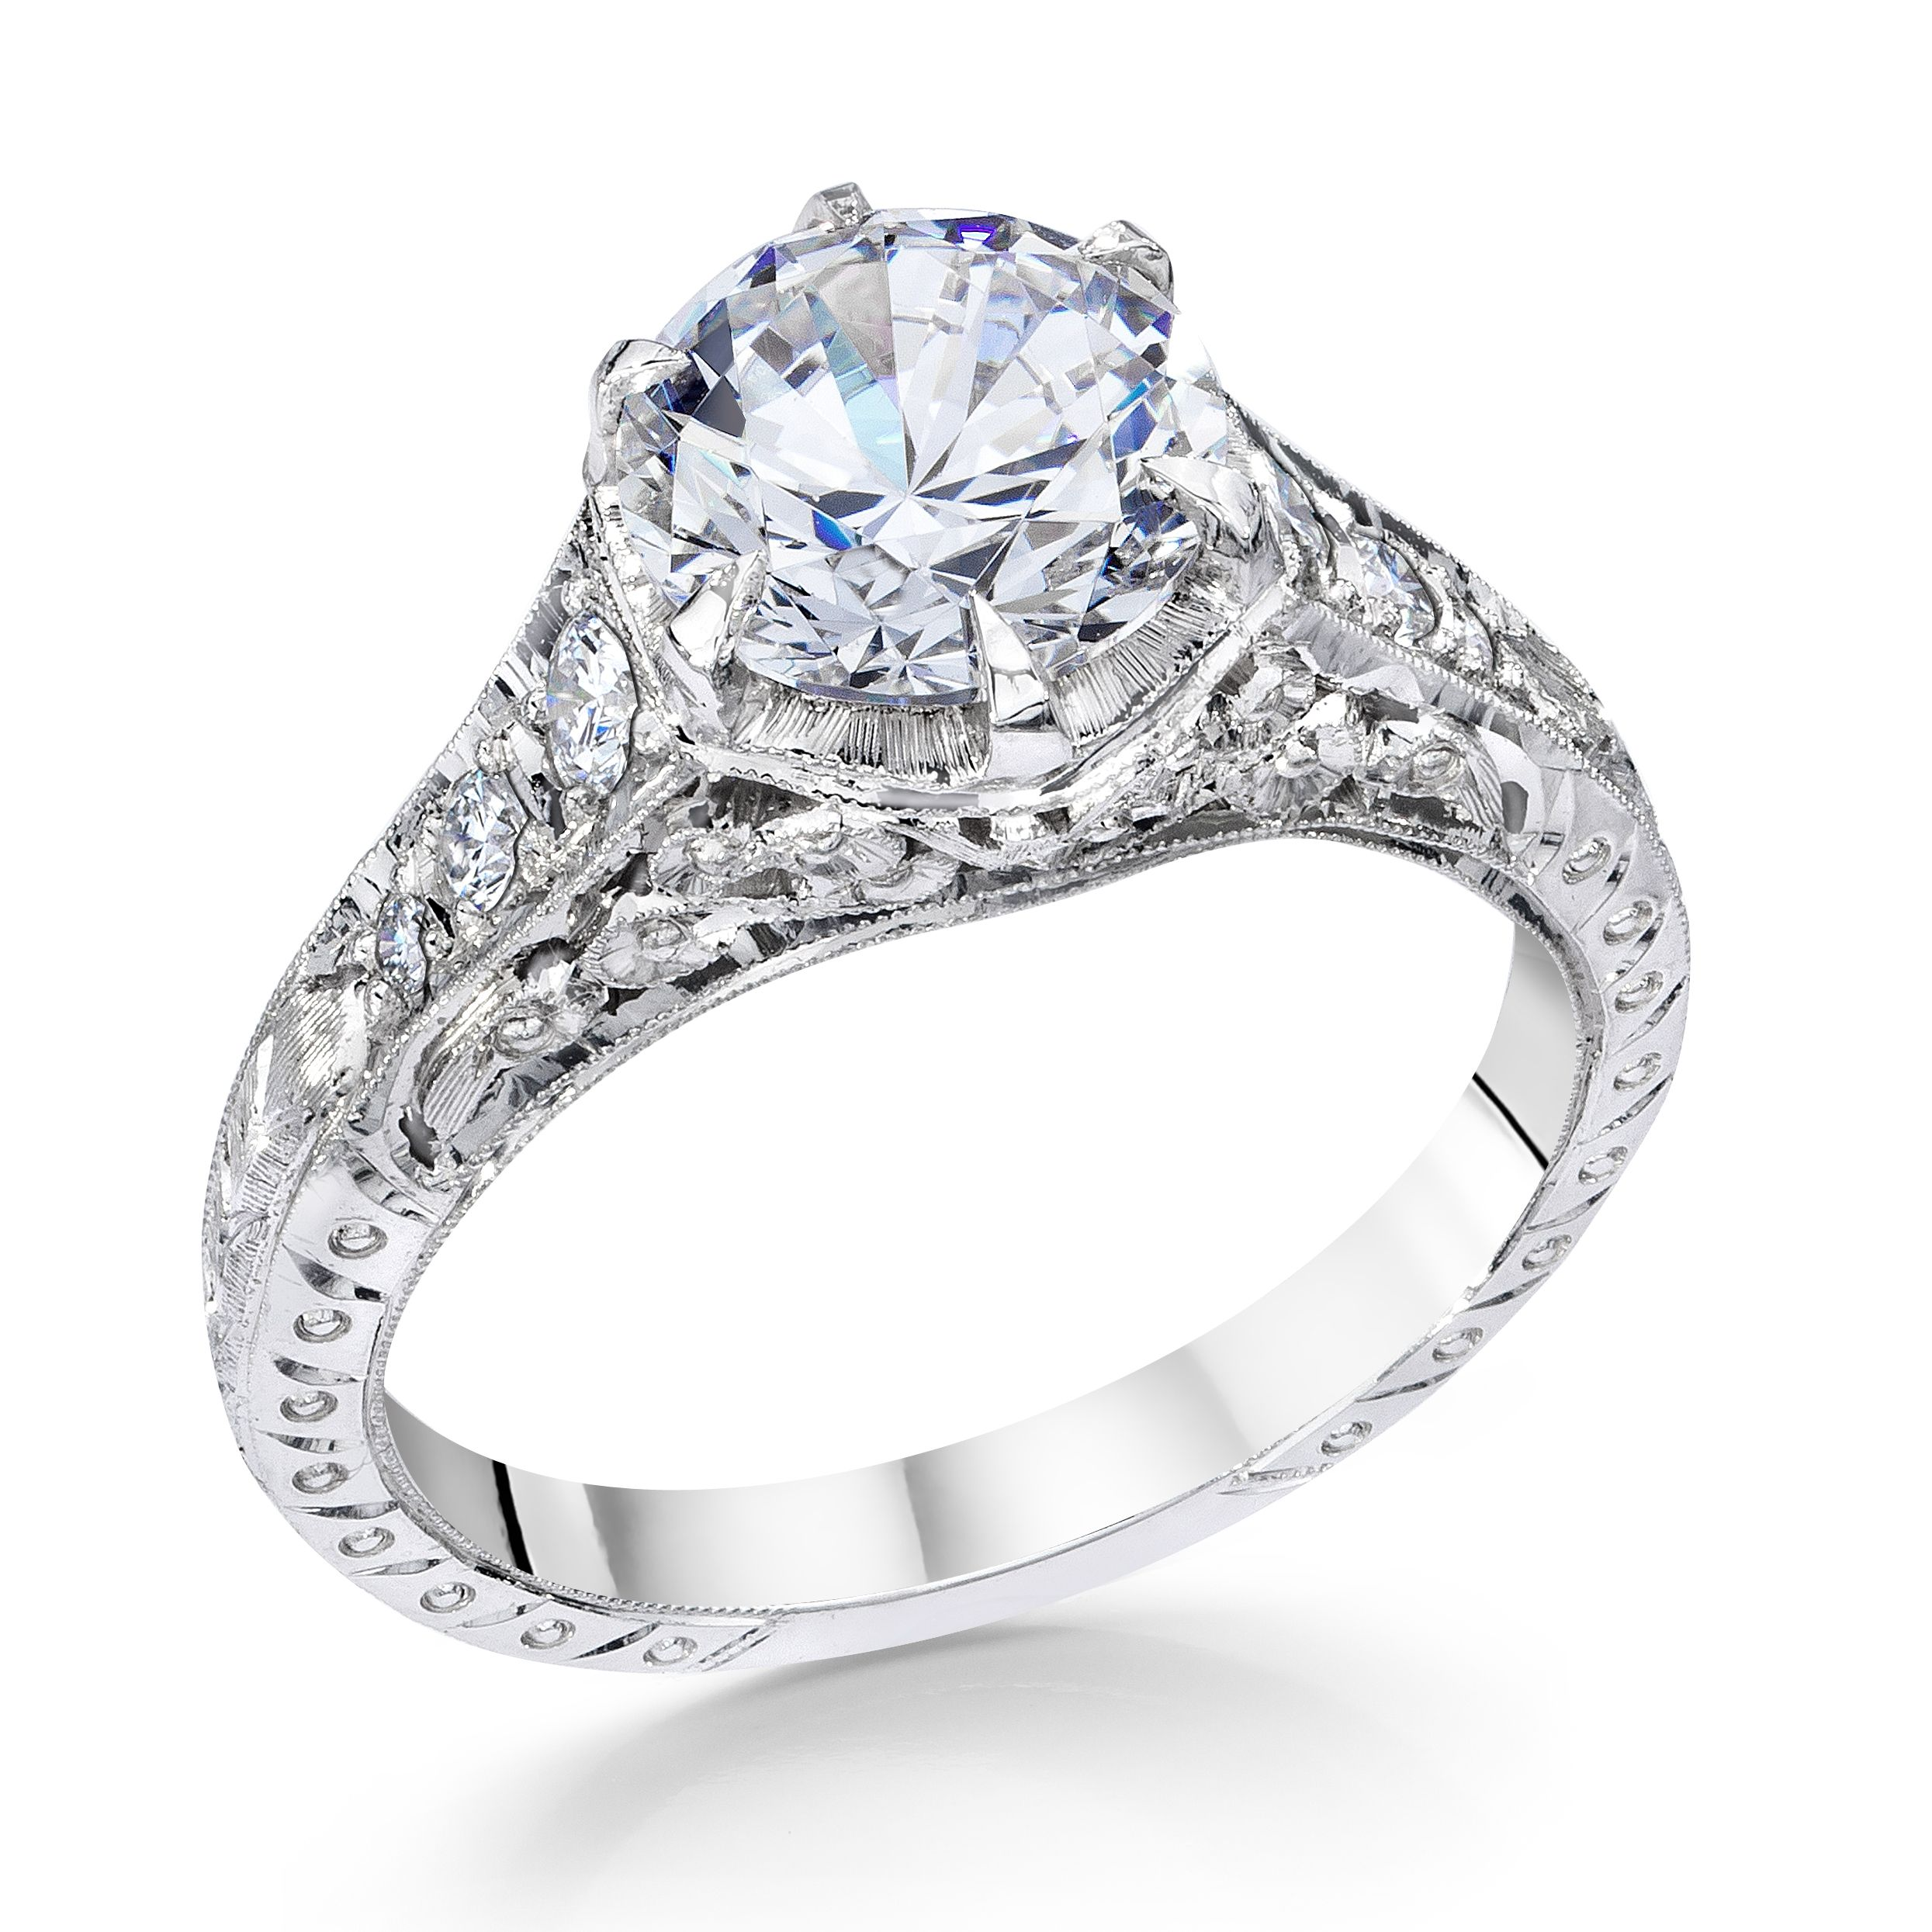 newsandevents wedding cooljoolz engagement patterned platinum diamond testimonials rings cheshire